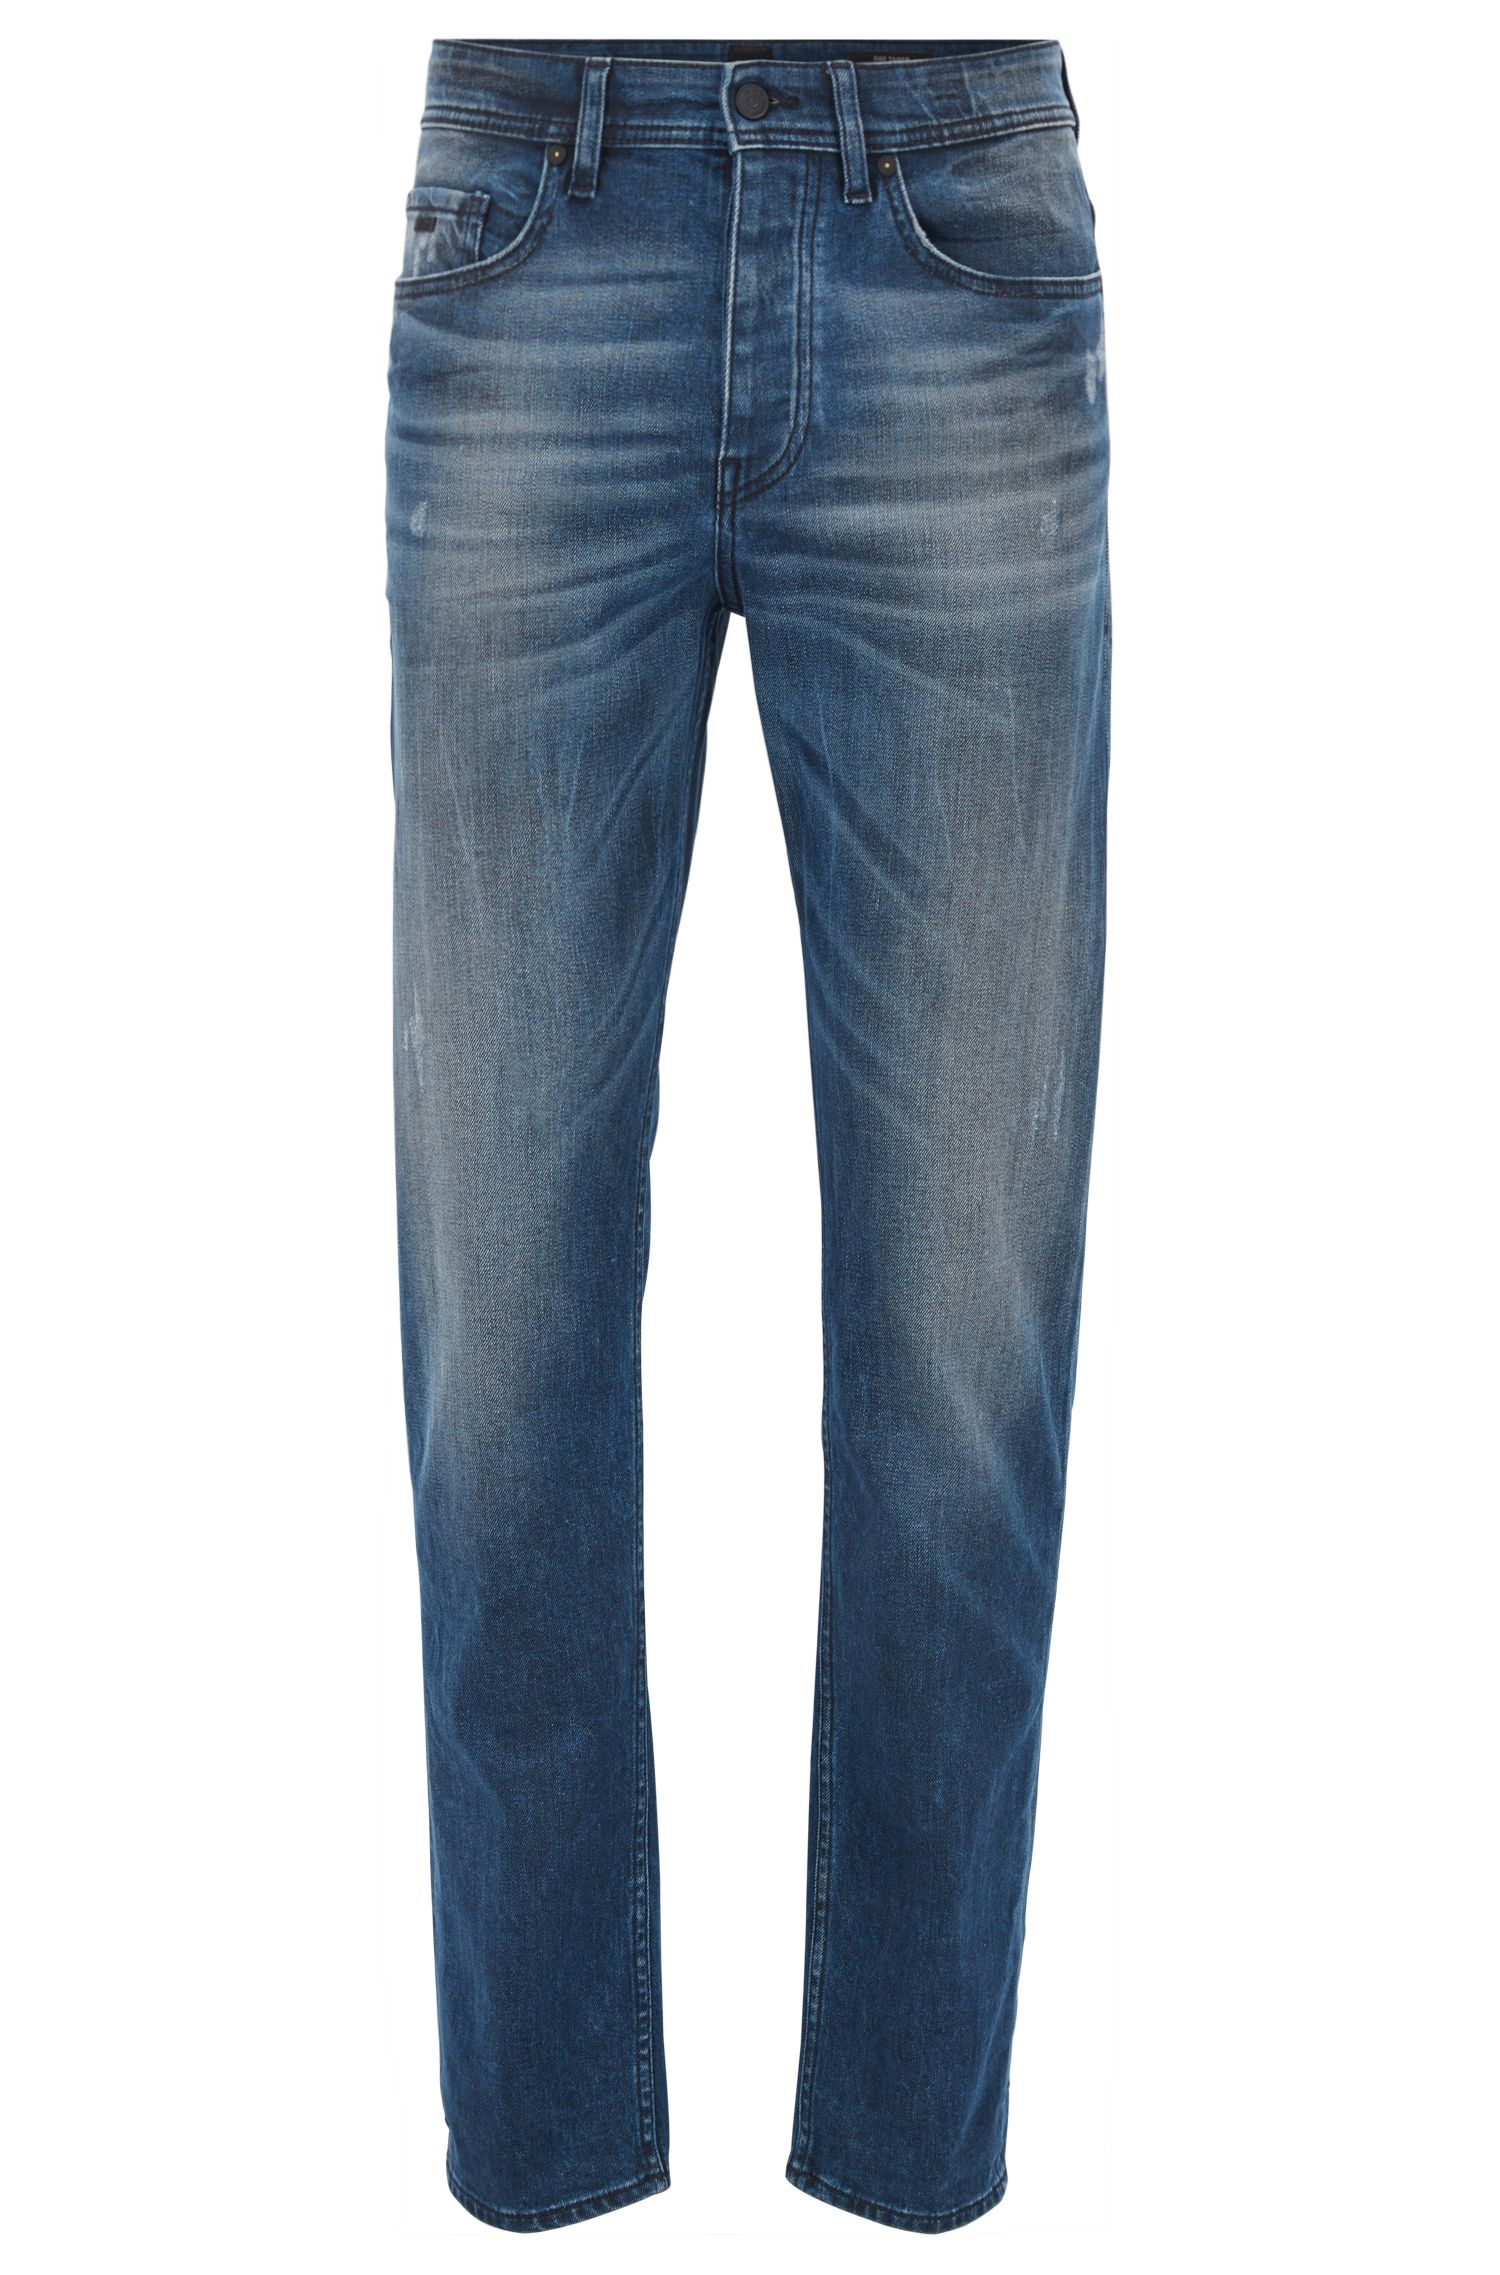 Jean Tapered Fit en denim stretch enduit bleu moyen, Bleu